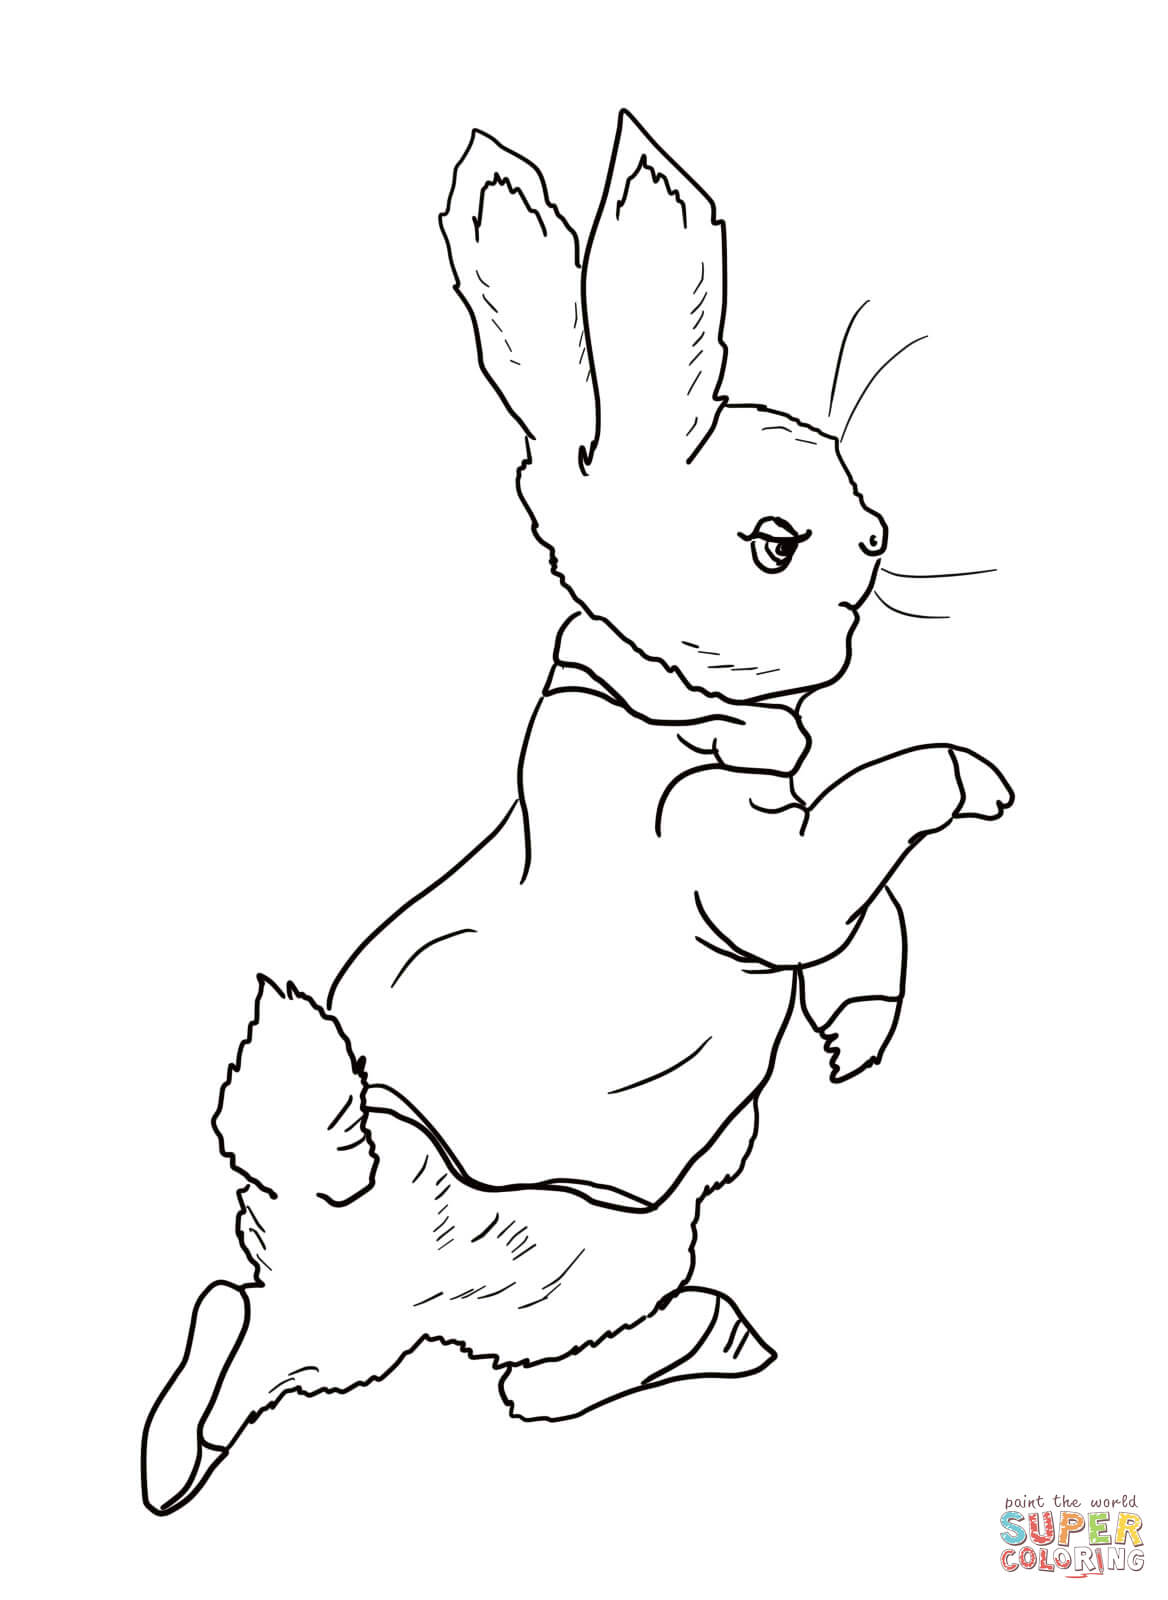 Drawn rabbit peter rabbit Rabbit Peter pages Pages peter